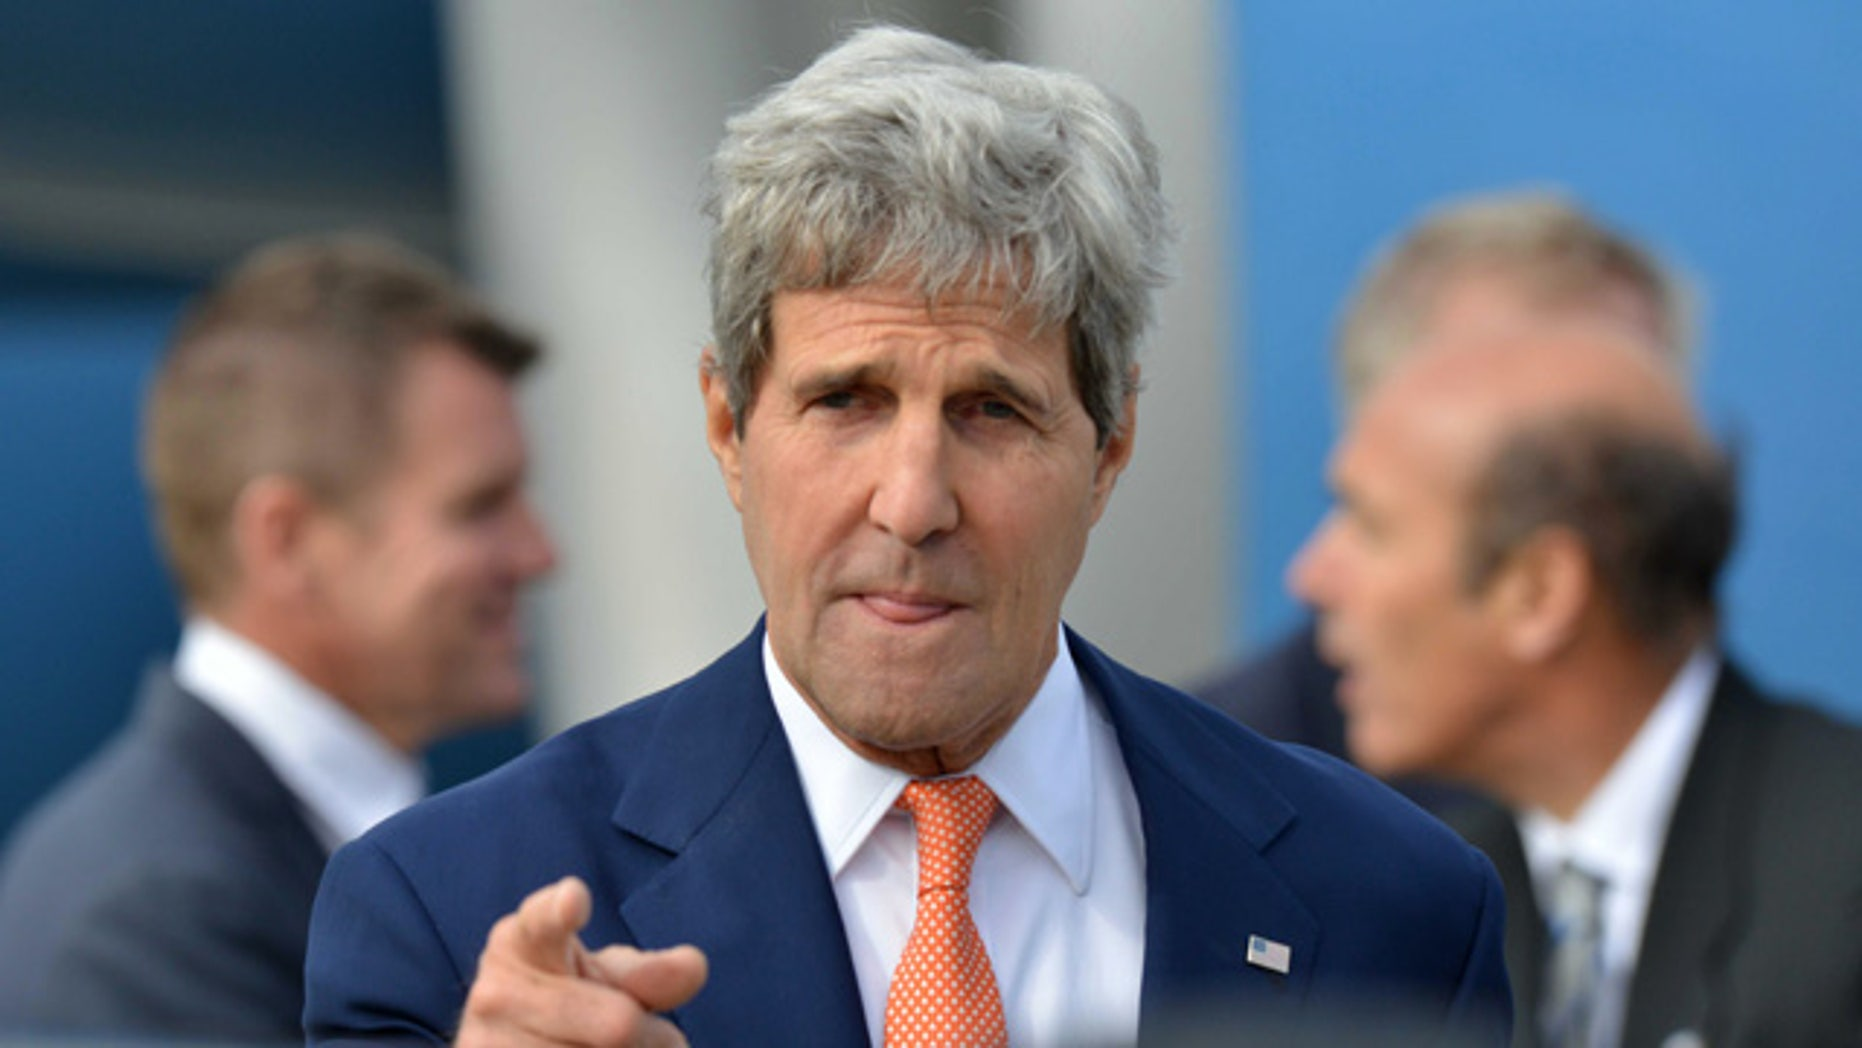 FILE - In this Monday, Aug. 11, 2014 file photo, U.S. Secretary of State John Kerry points a finger as he arrives in Sydney. In its latest personal attack on a prominent official, North Korea has called Kerry a wild dog with a 'hideous lantern jaw'. (AP Photo/Peter Parks, Pool)